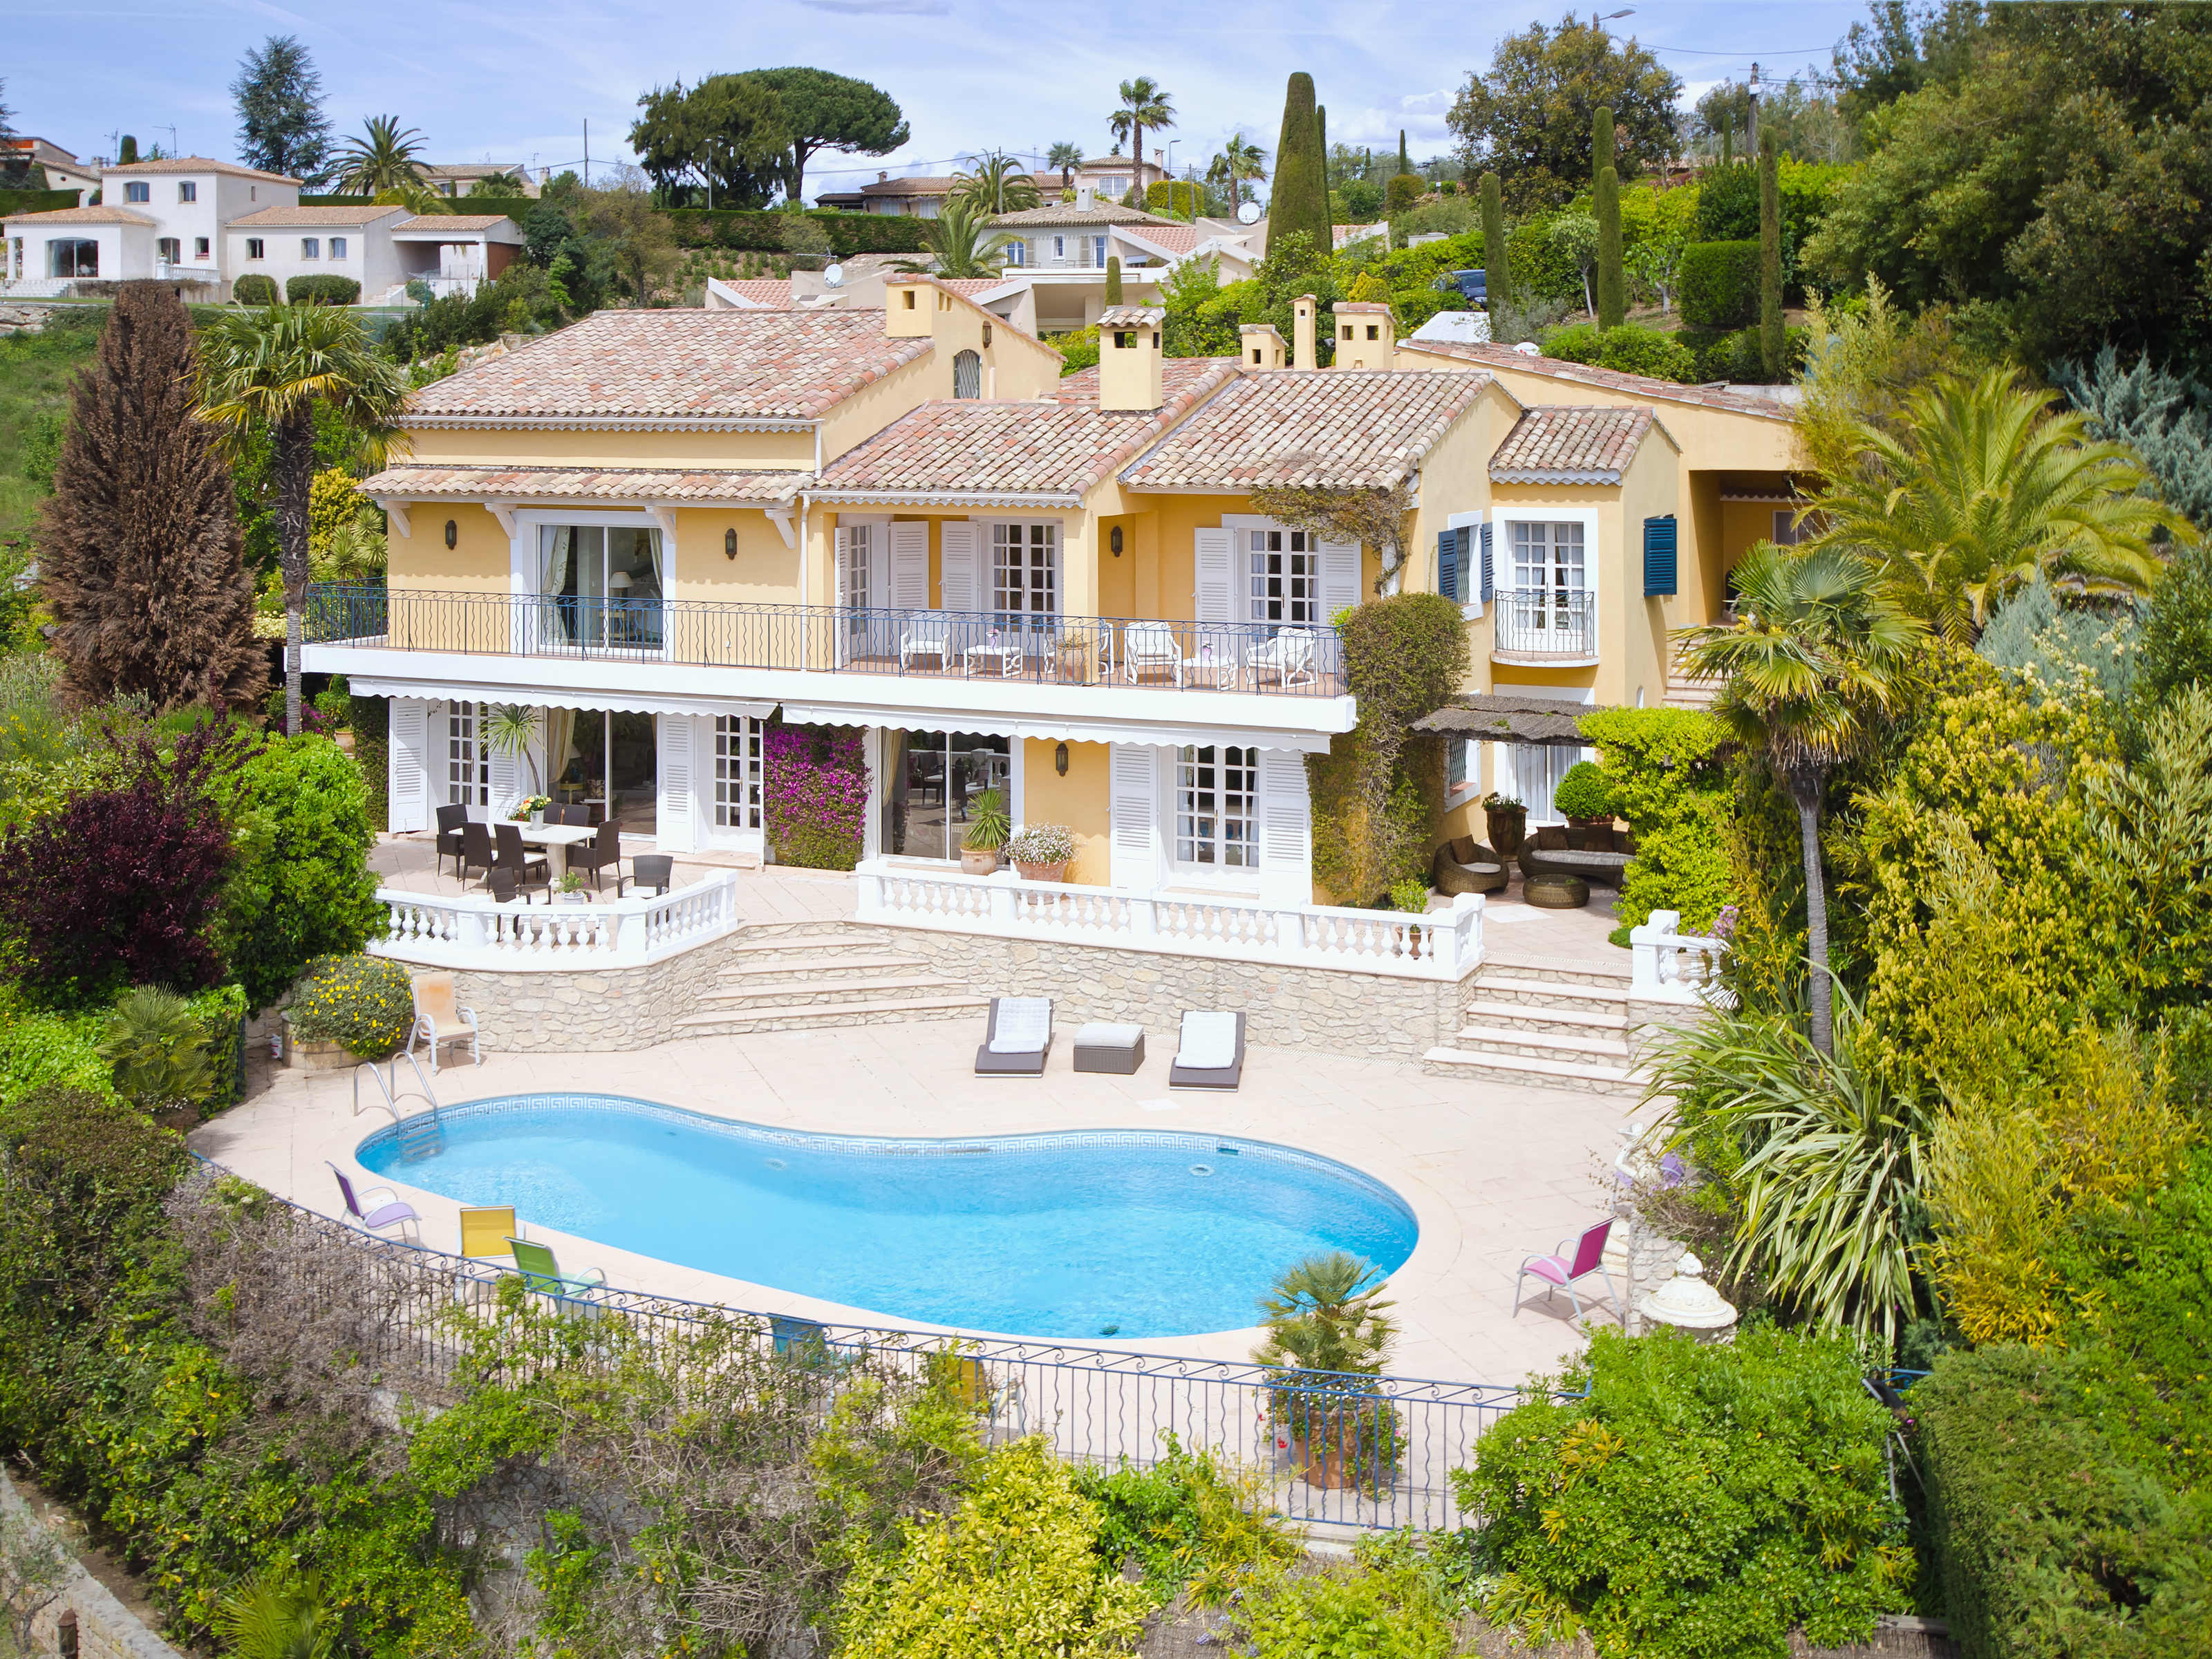 Single Family Home for Sale at SOLE AGENT - Beautiful Provencal Style villa, panoramic sea view Super Cannes Cannes, Provence-Alpes-Cote D'Azur 06400 France